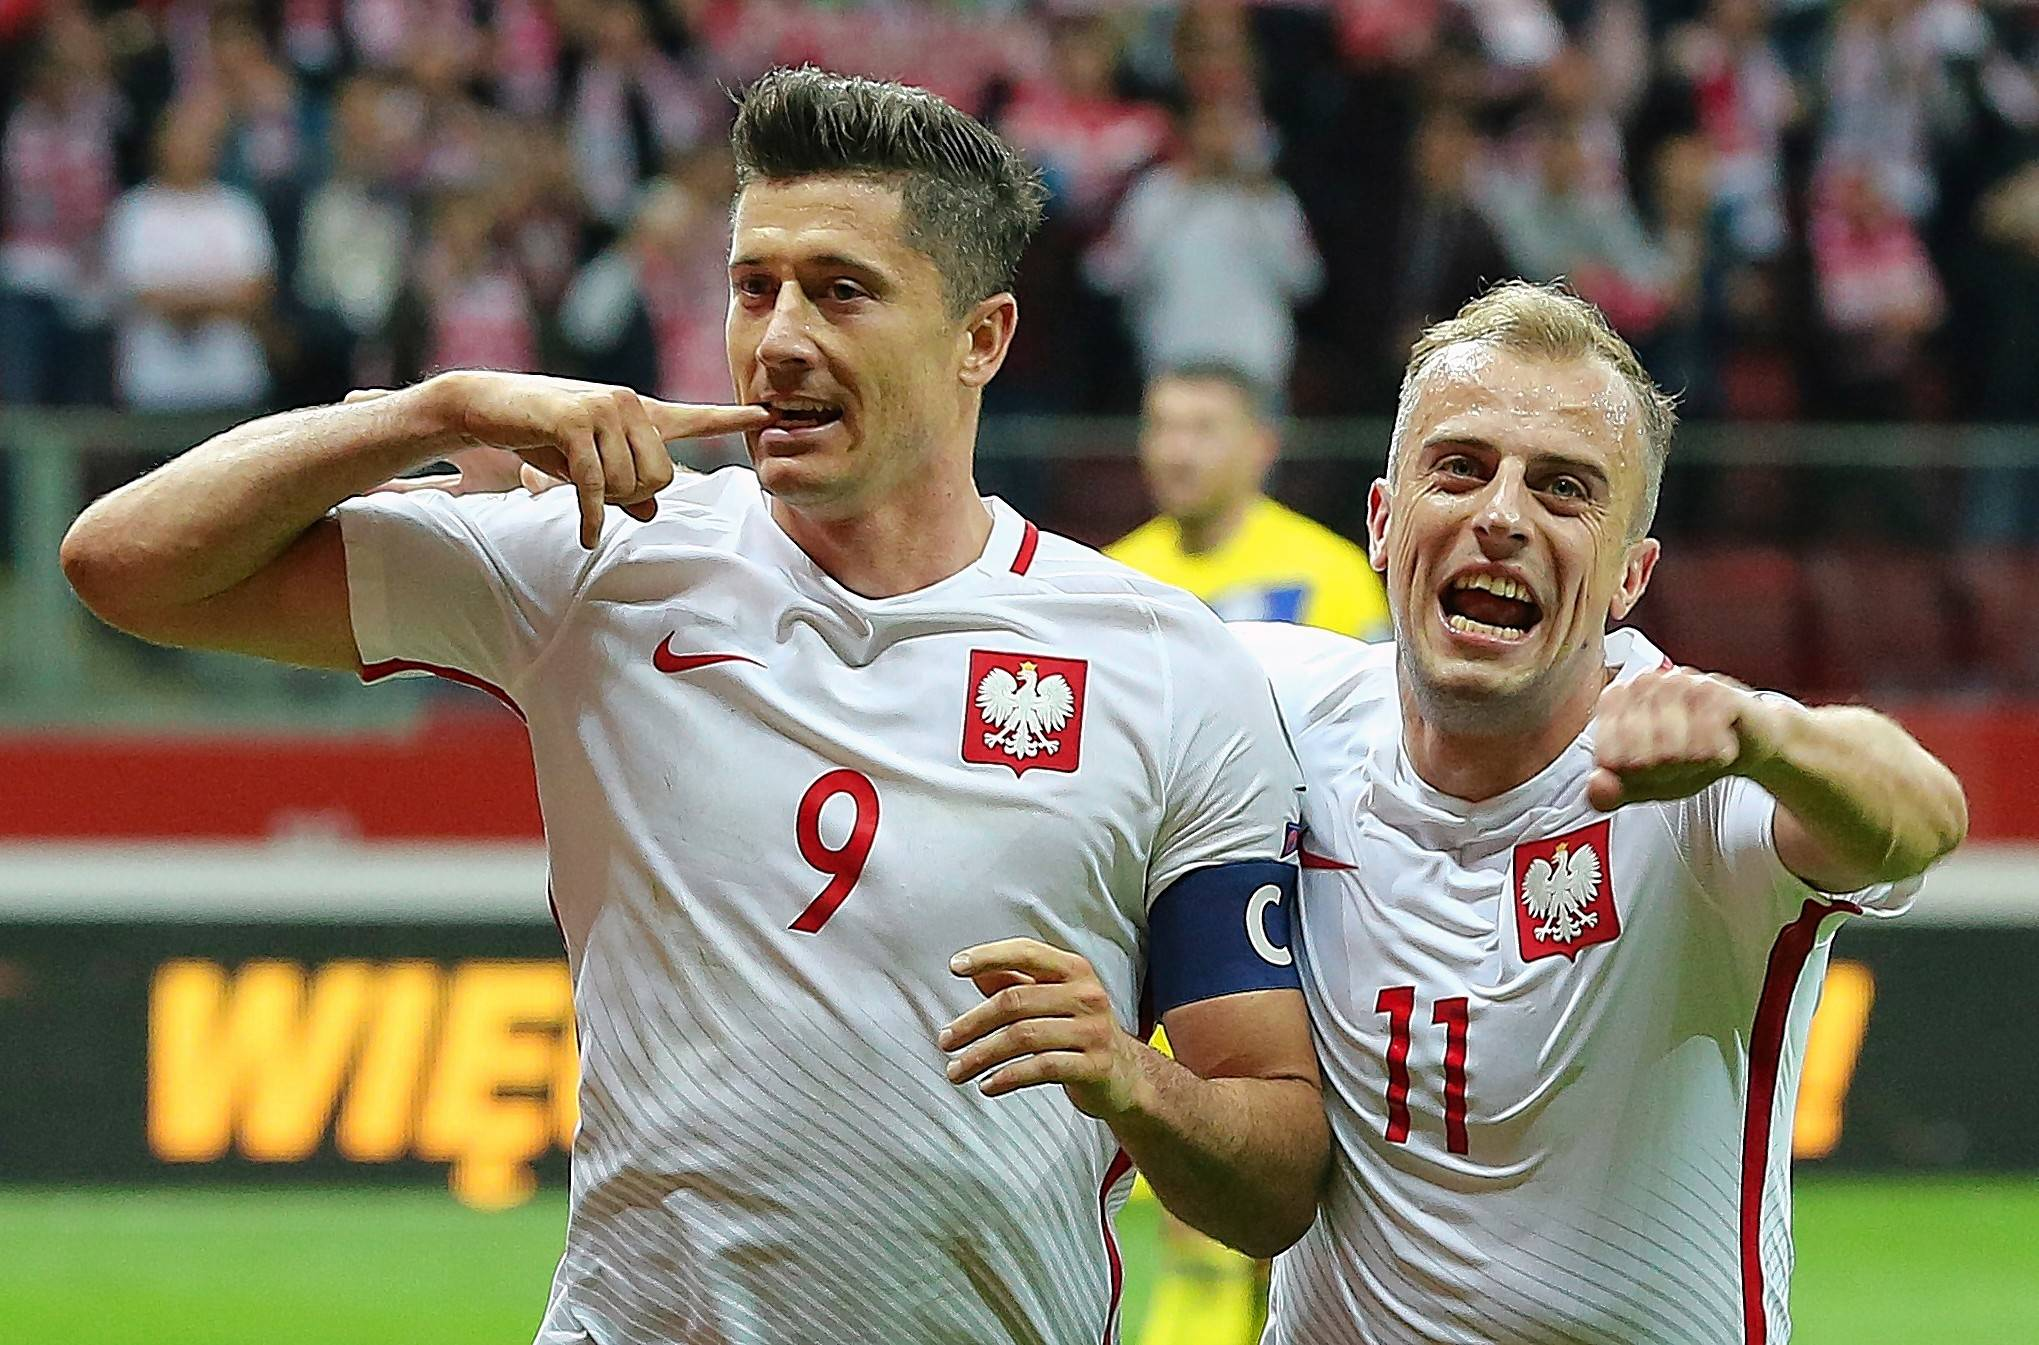 Poland's Robert Lewandowski, left, has been a scoring machine with 89 league goals the past three Bayern Munich campaigns and 10 in World Cup qualifying for his home country.